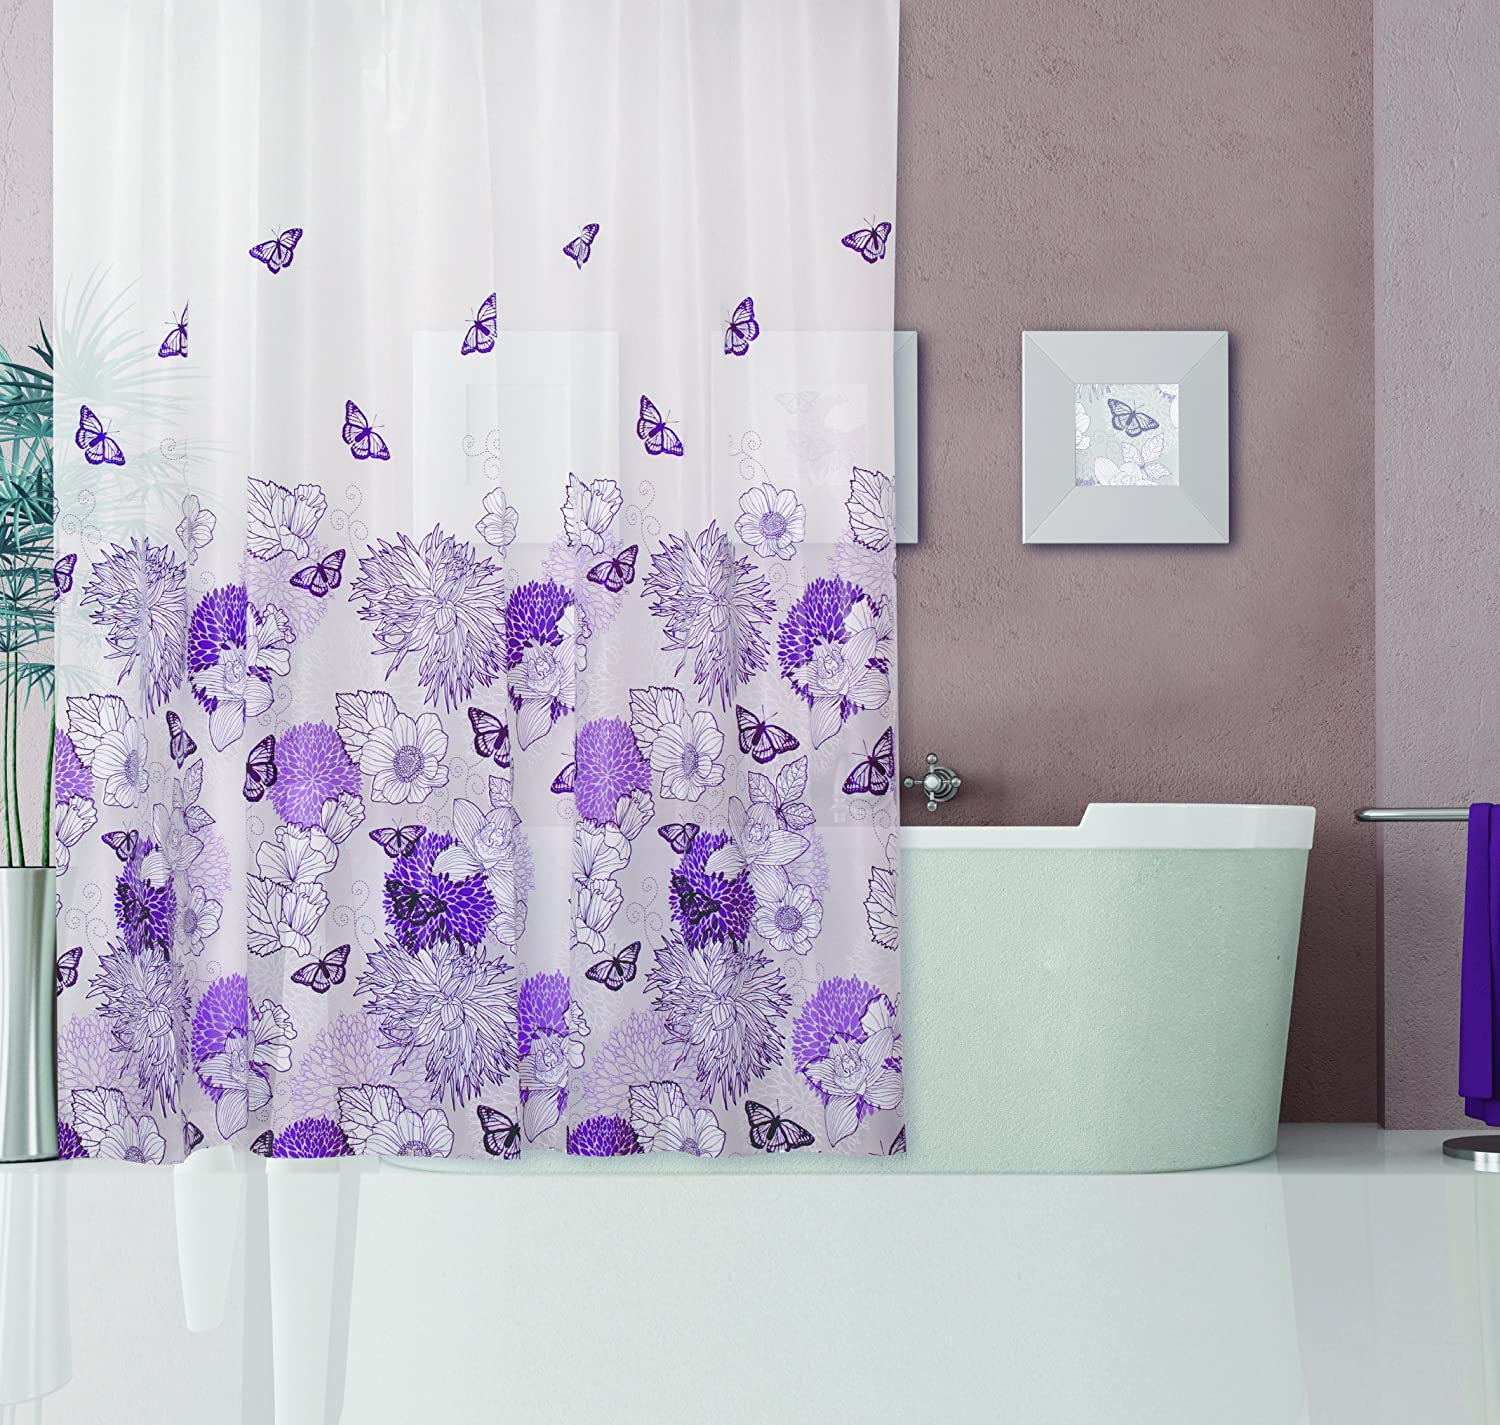 Dainty Home 13-Piece Garden Containing Shower Curtain and 12 Metal Hooks Set, Purple 13GAPU